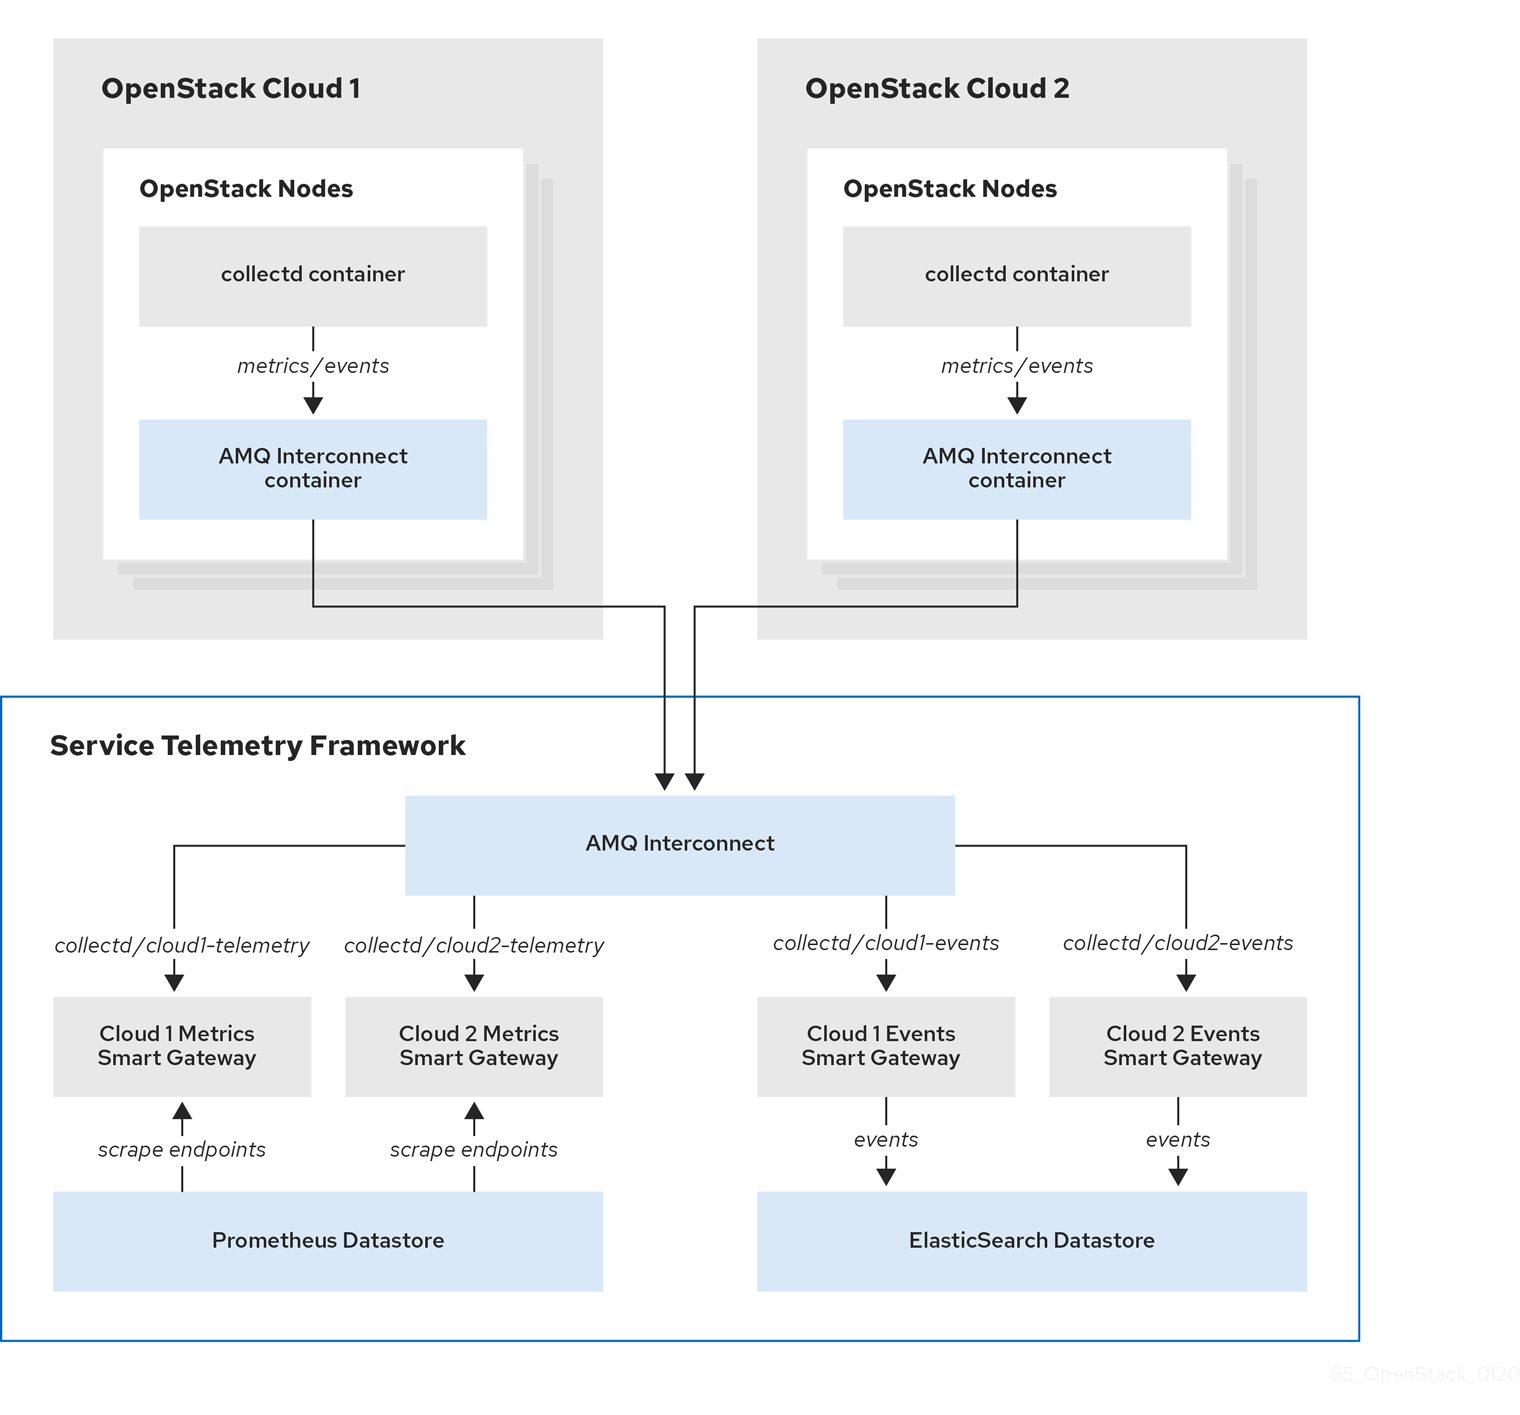 An example of two RedHatOpenStackPlatform clouds connecting to STF